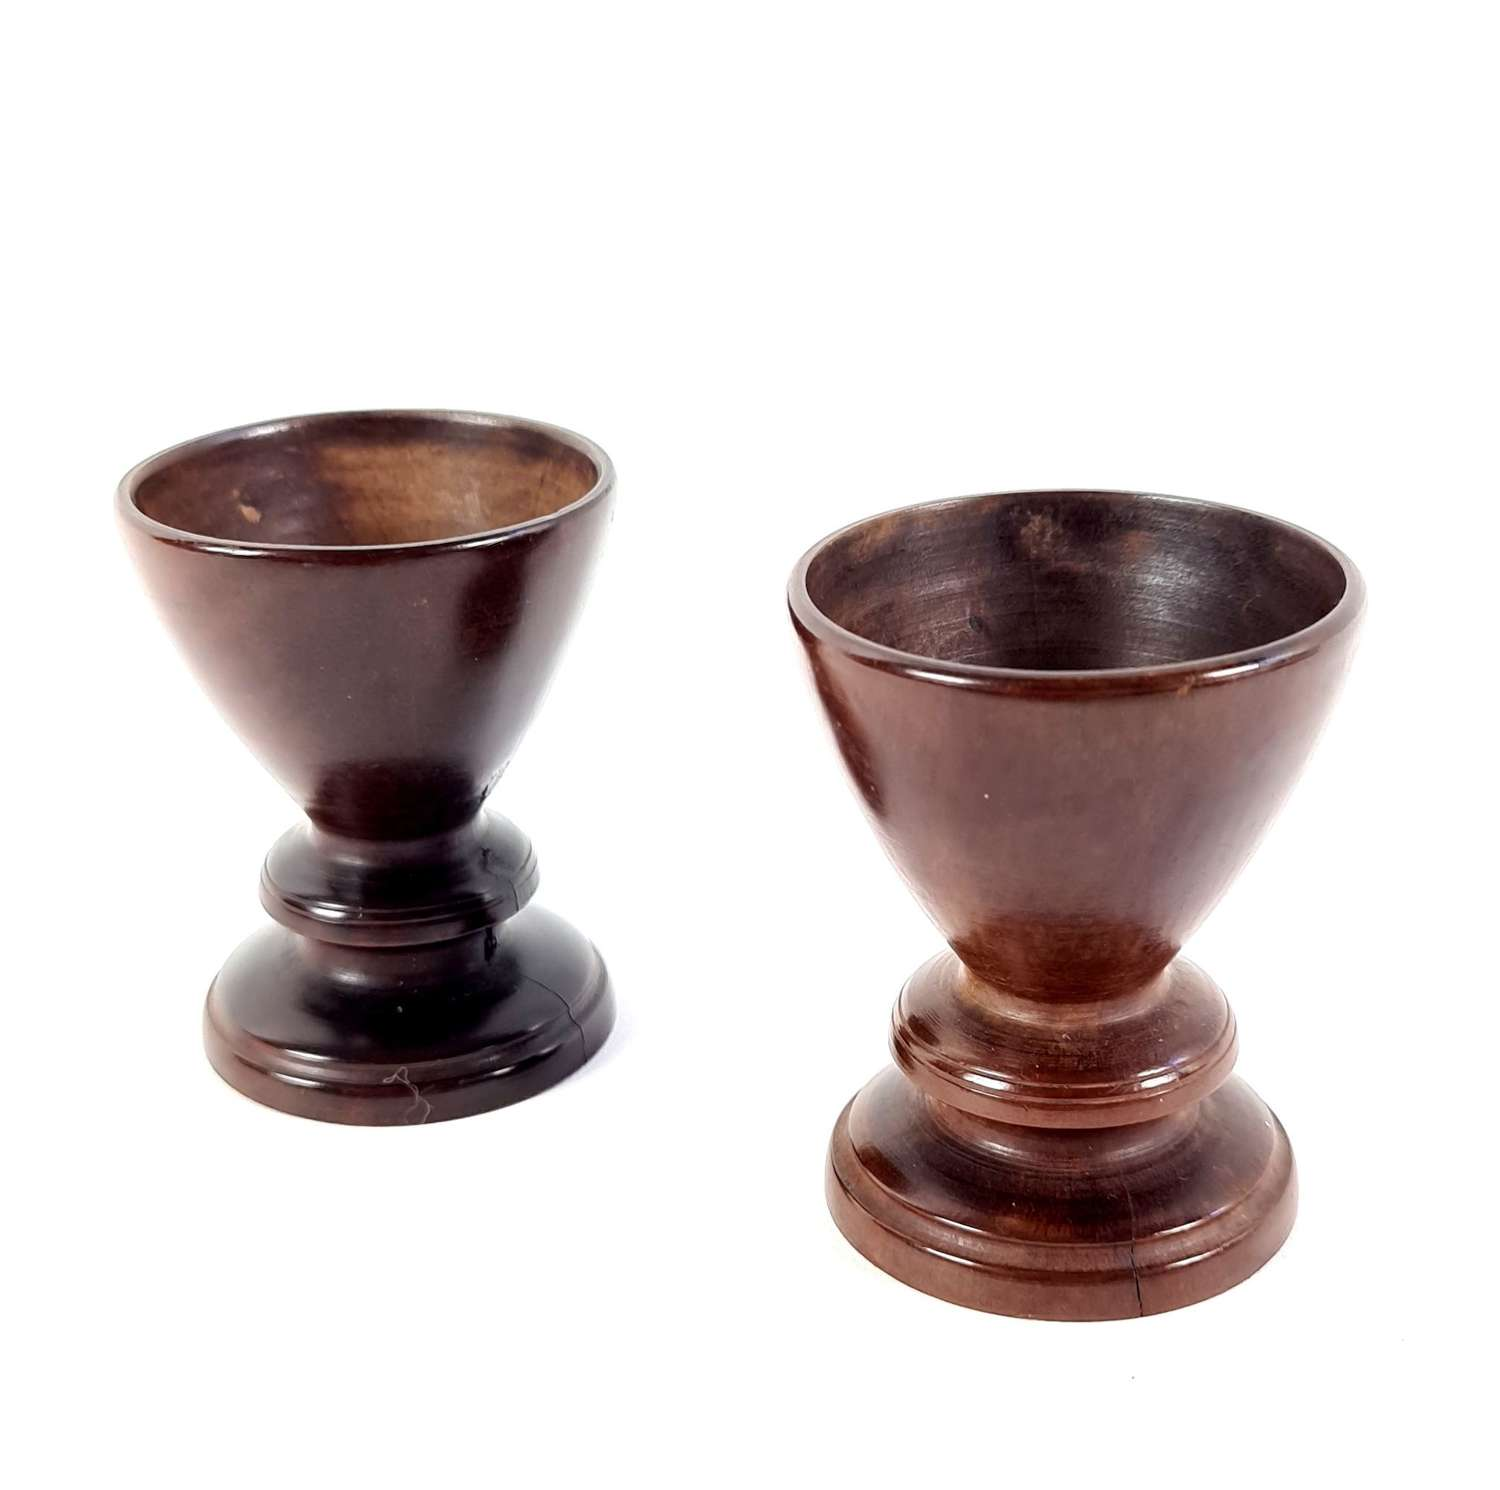 Matched Pair of Egg Cups